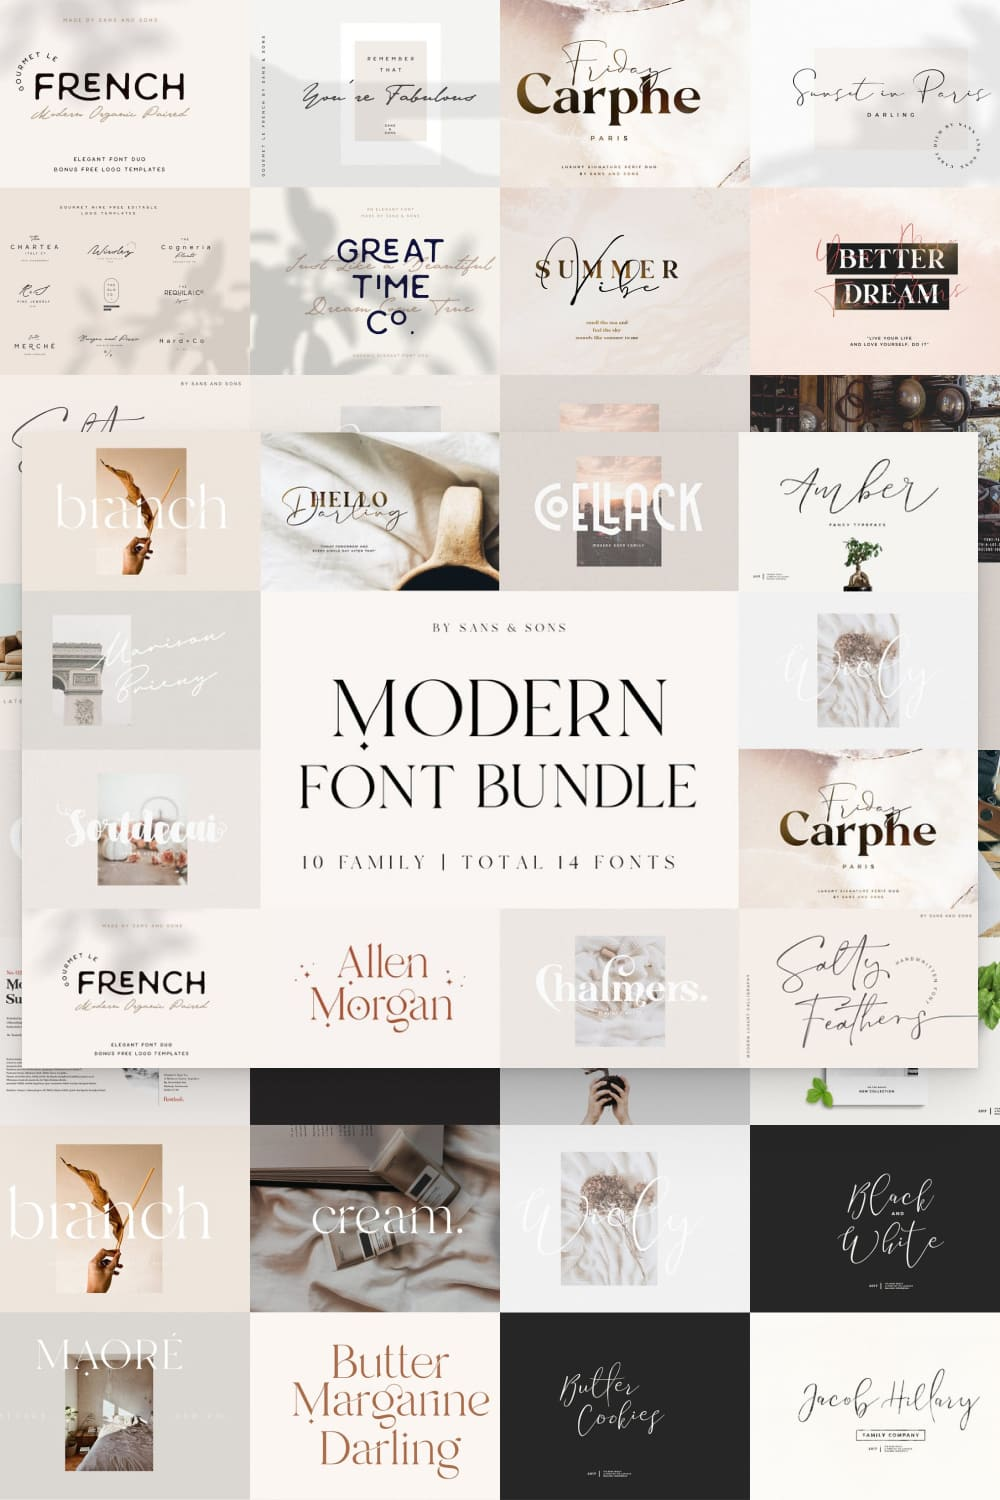 This font contains the maximum concentration of tenderness and style.